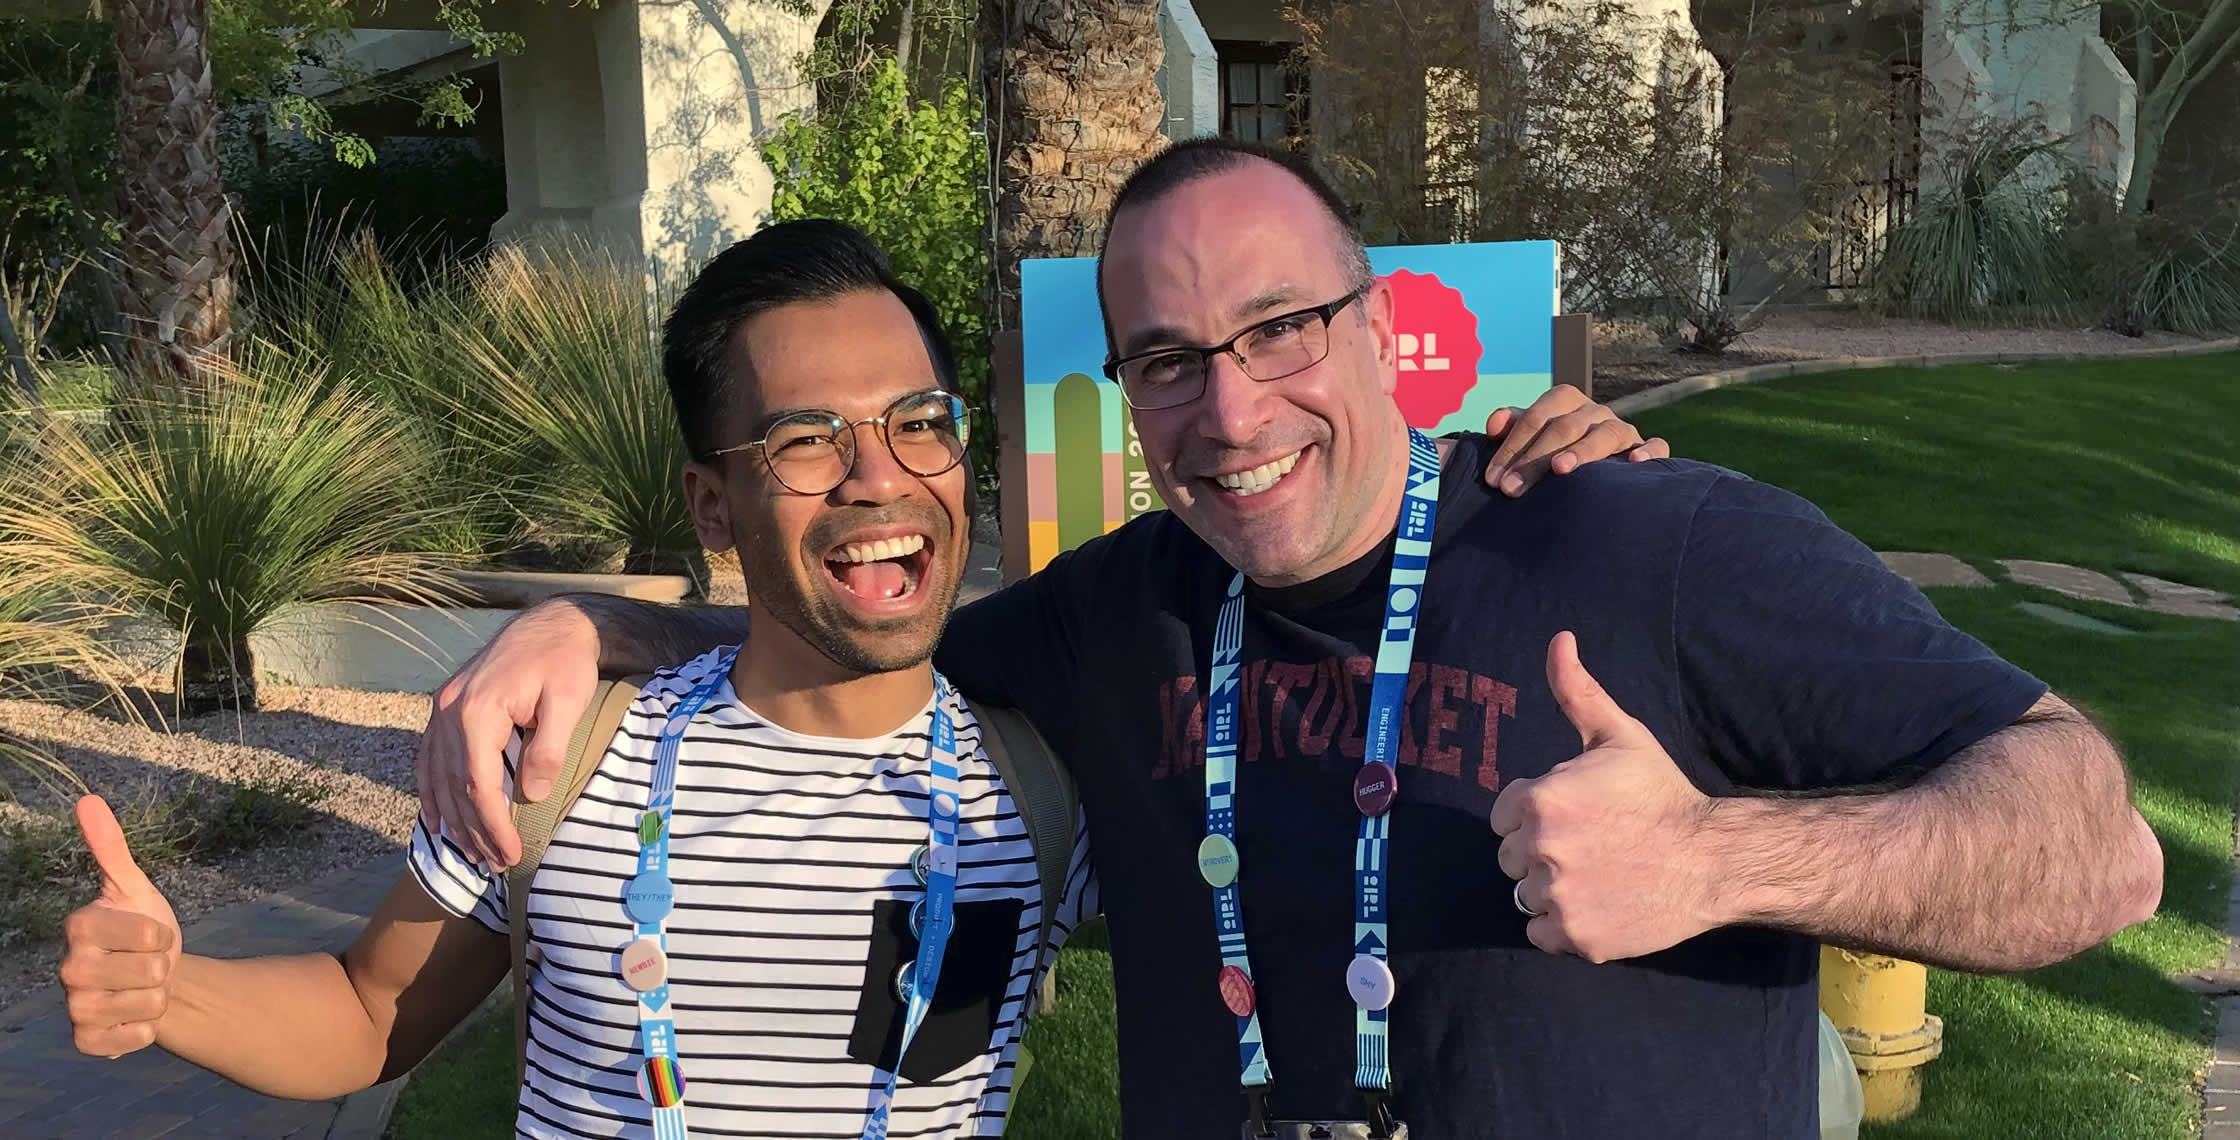 Ben Nadel at InVision In Real Life (IRL) 2019 (Phoenix, AZ) with: Manil Chowdhury